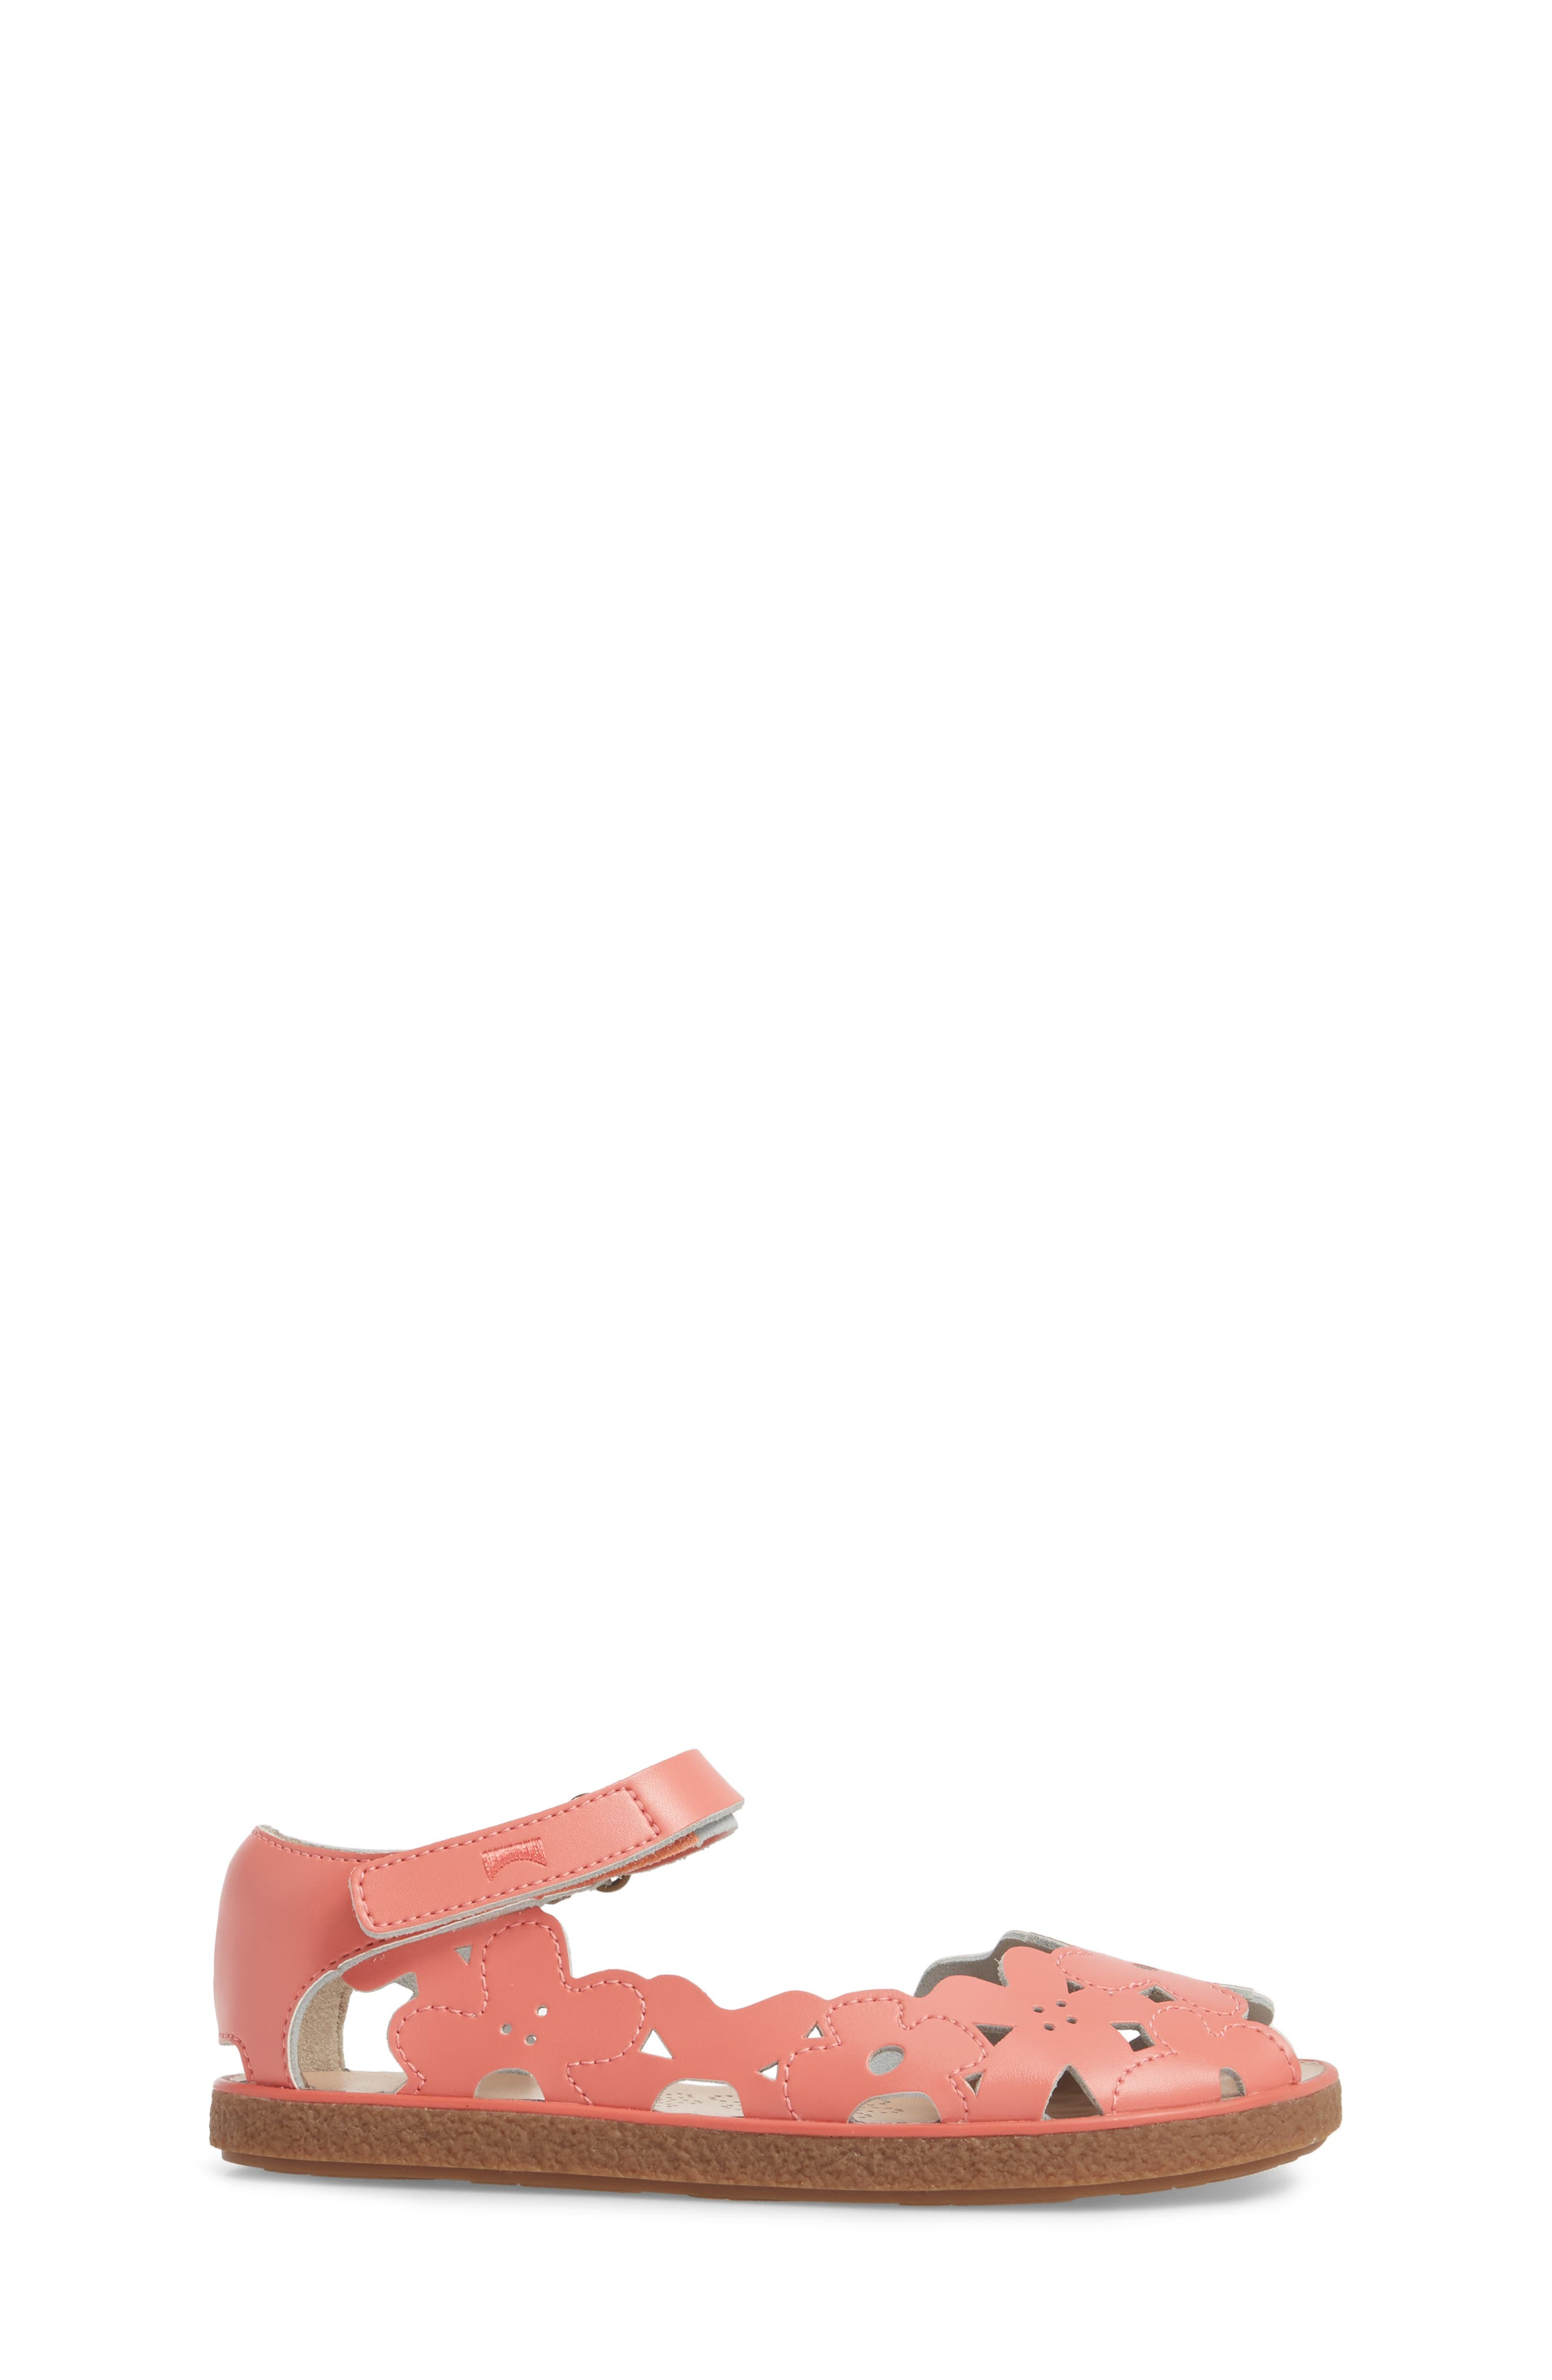 Twins Perforated Sandal,                             Alternate thumbnail 3, color,                             Pink